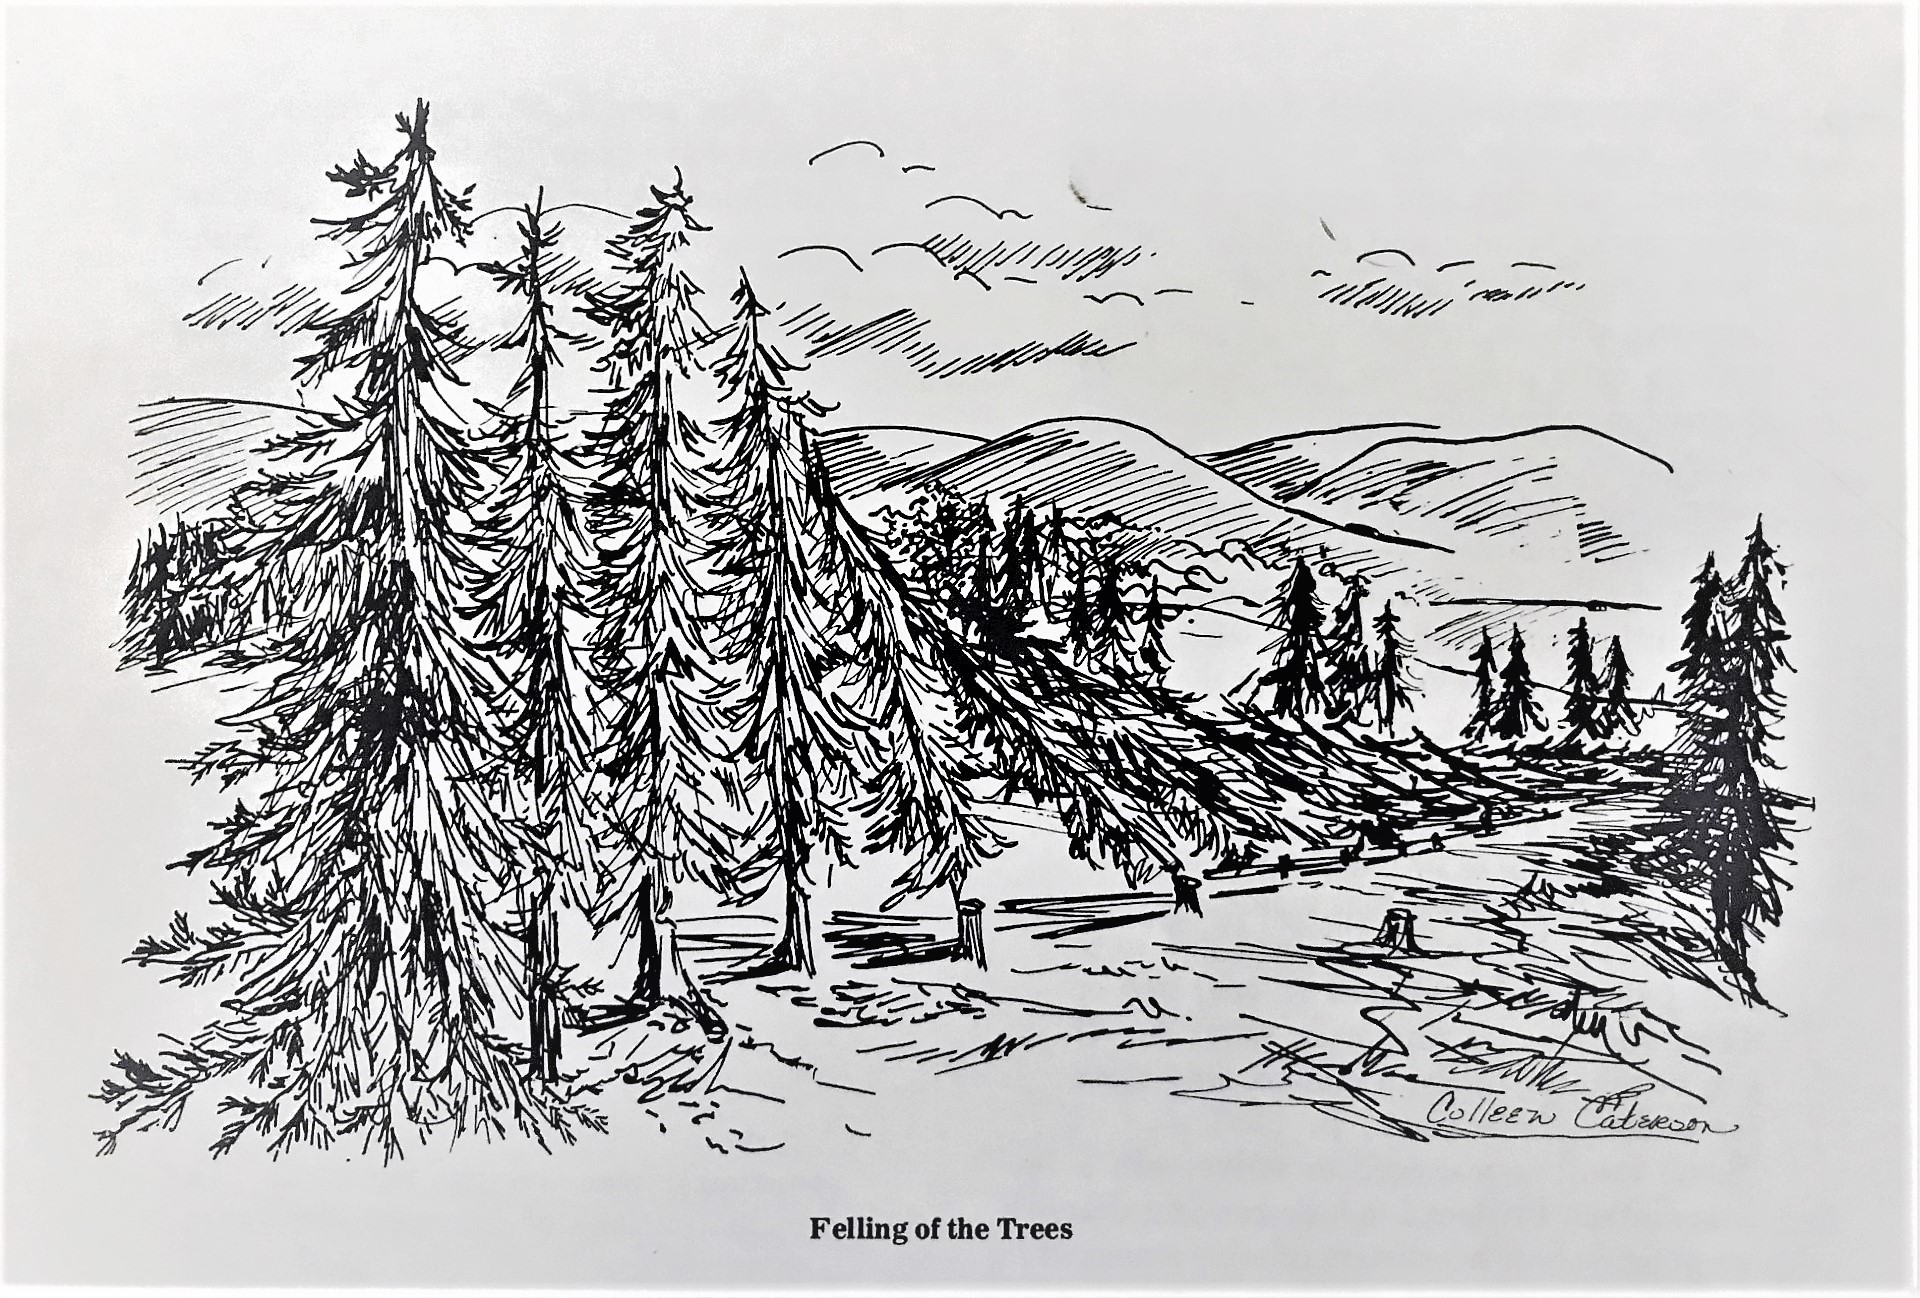 Felling of the Trees by Colleen Caterson